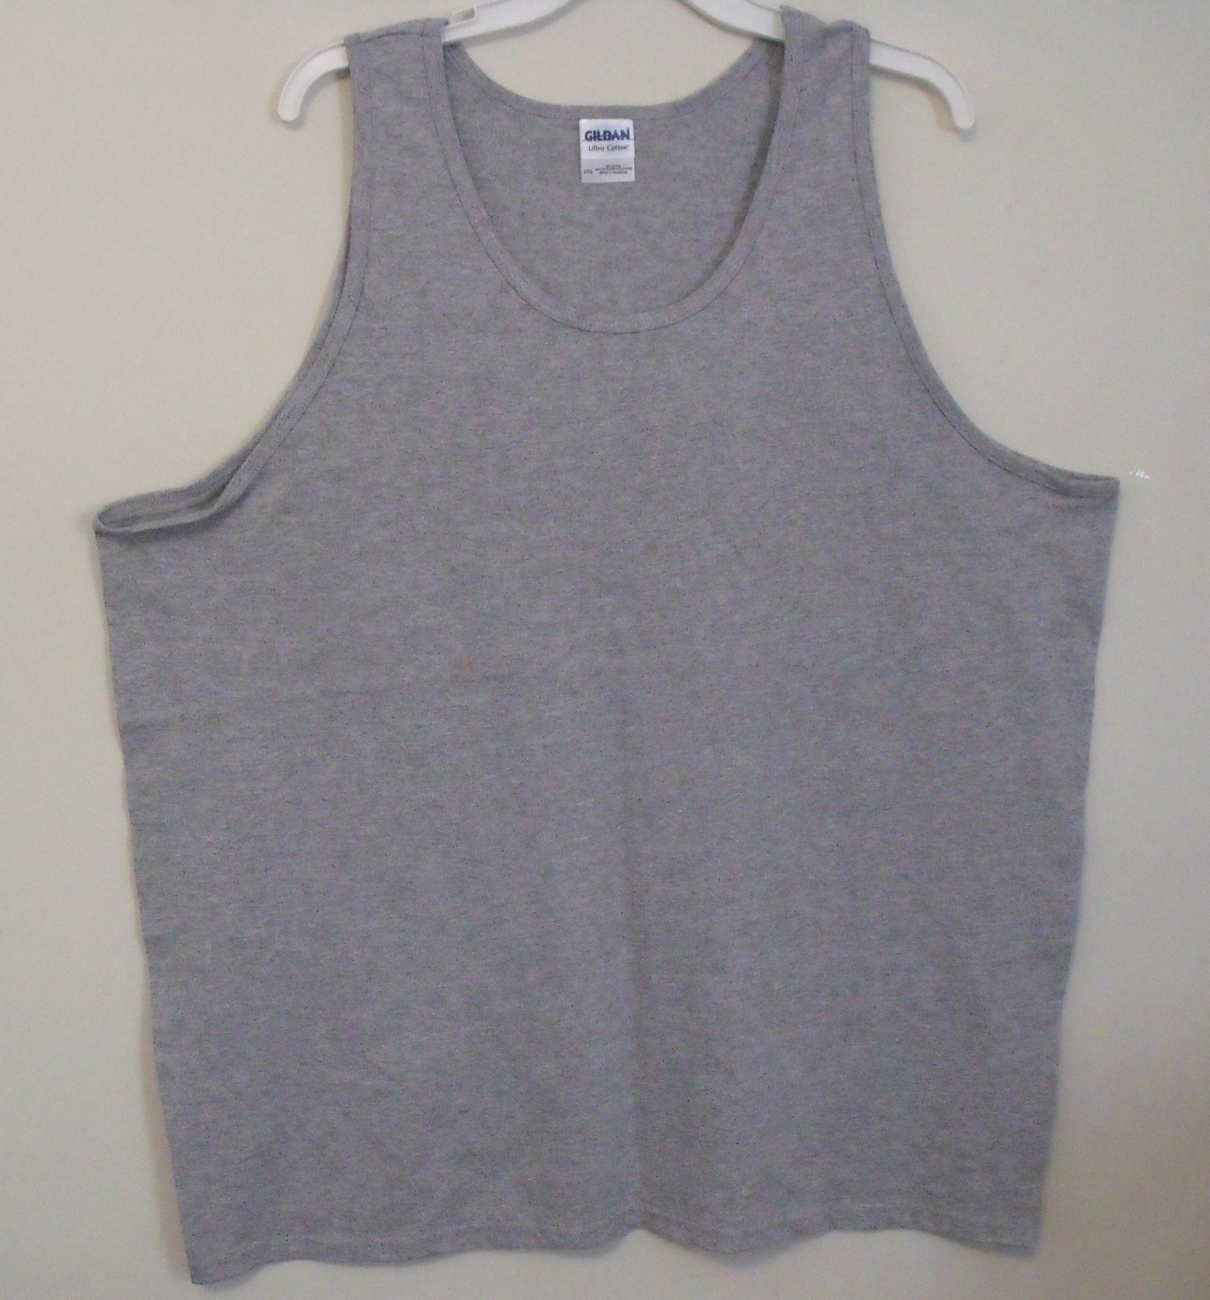 Mens gildan gray tank top front 2xl